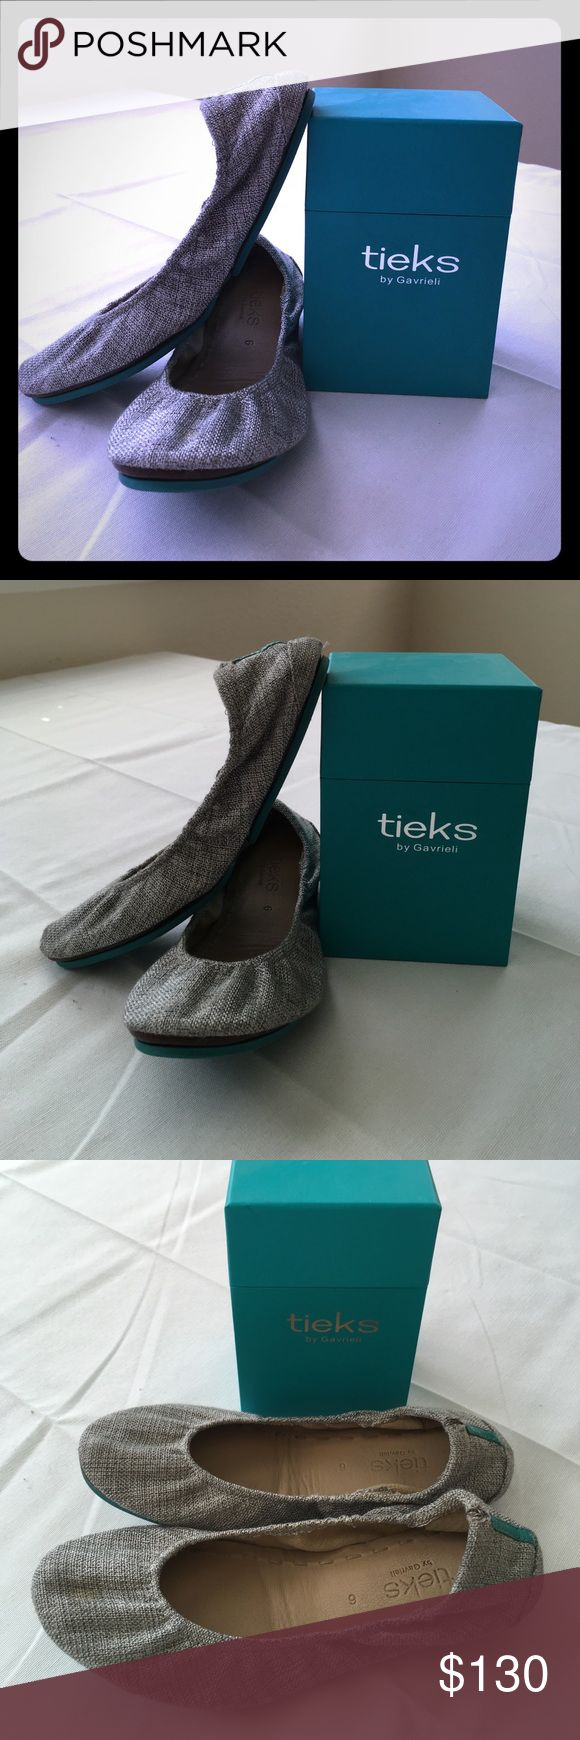 Tieks Vegan Silver Lake Size: 6 US I'm moving across the world so it's time to find new homes for my beloved shoes. These Silver Lake soft grey hue flats is versatile for all seasons - pair them with a breezy sundress or jeans. Slight scuffing in the back of the left heel. Non-skid rubber soles and cushioned instep. Heels fold in half for easy storage in purse. Includes: Tieks box with tote bag. Tieks Shoes Flats & Loafers